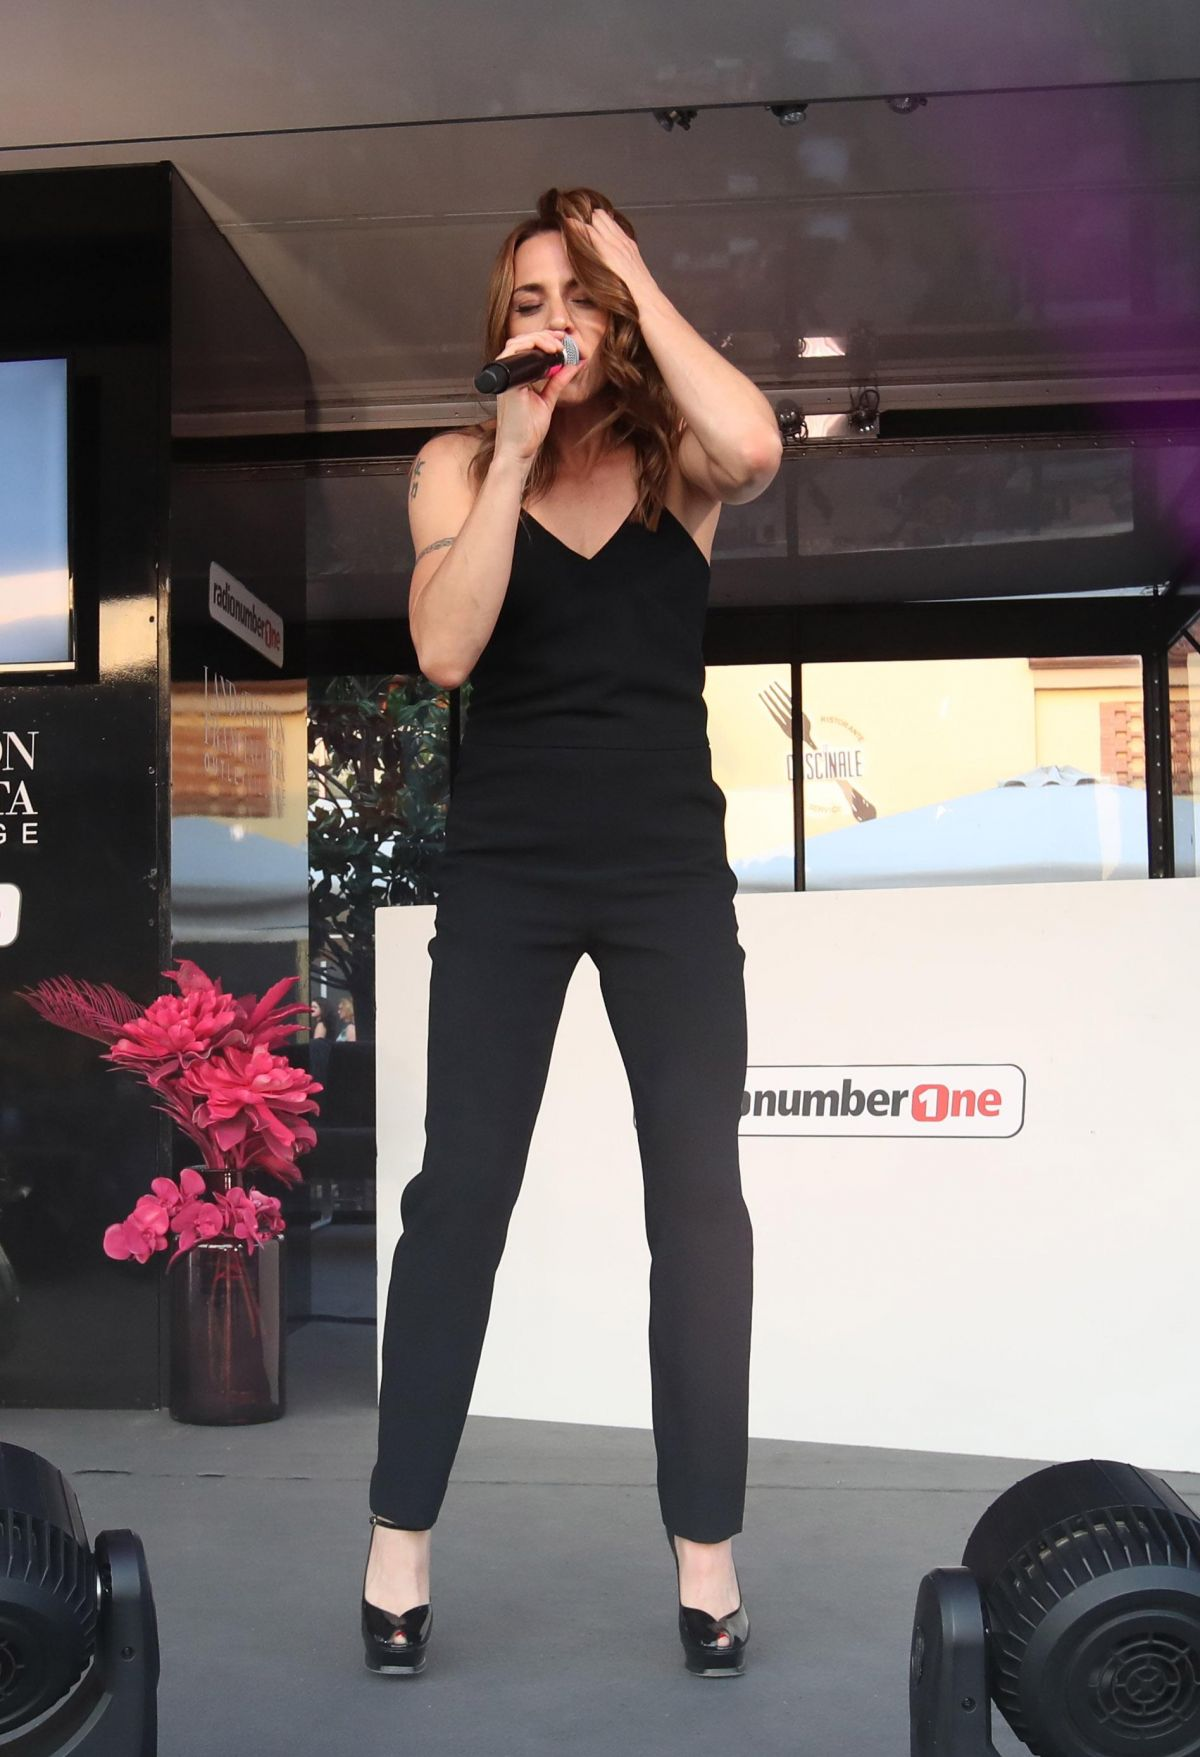 buy popular ff364 b349f MELANIE CHISHOLM Performs at Franciacorta Outlet of Rodengo ...